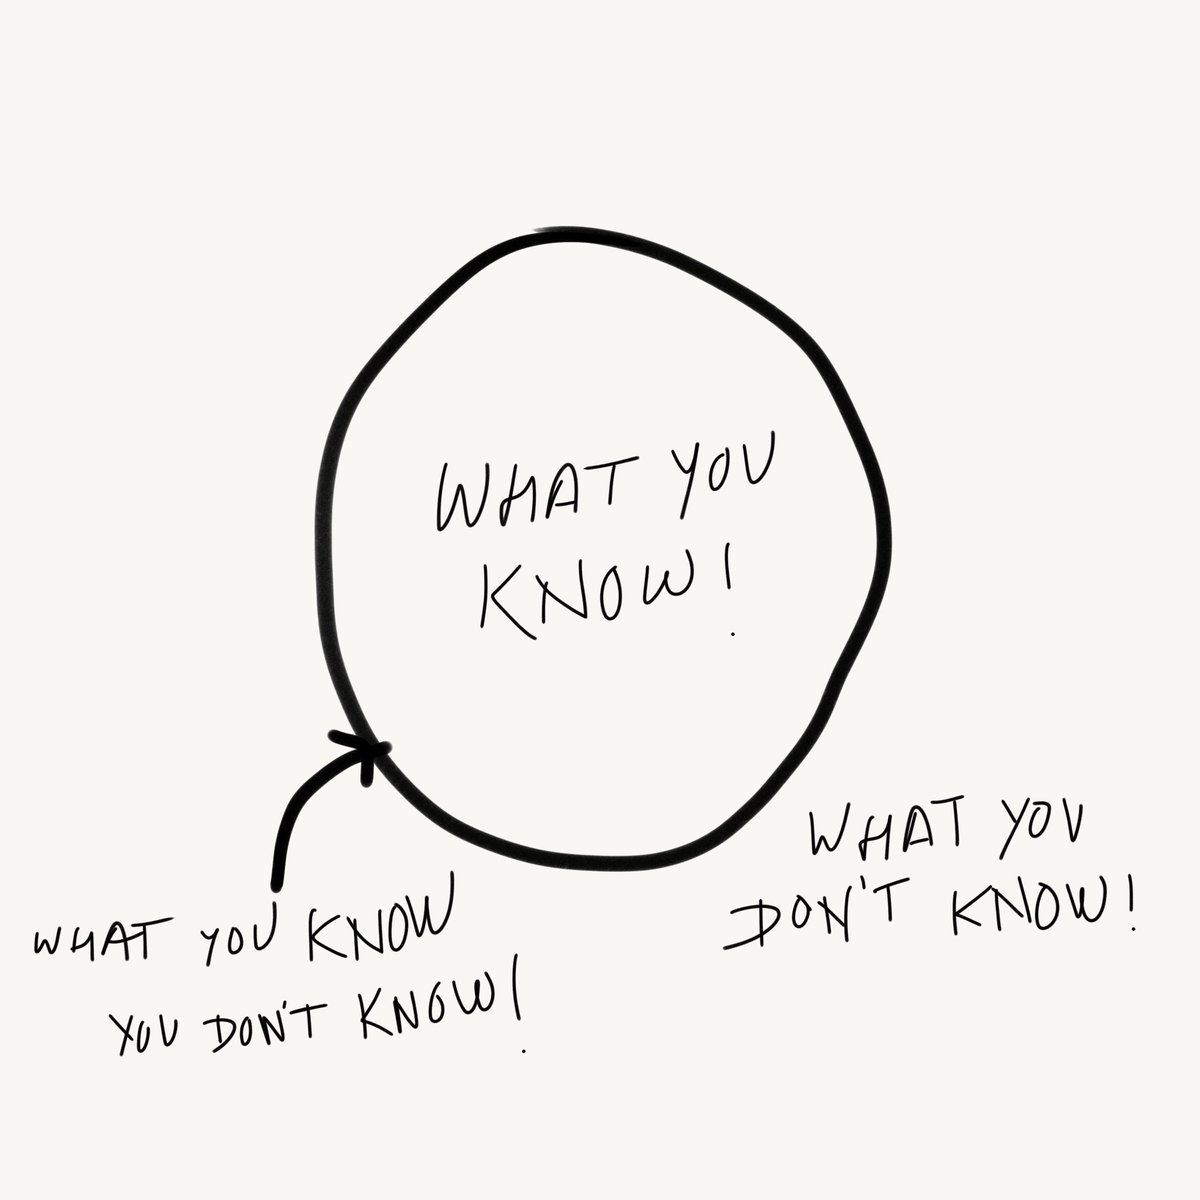 """Frank M. Waechter #vaccinated on Twitter: """"""""The more you know, the more you  know what you don't know! What you know is inside a circle, what you don't  know is outside of"""